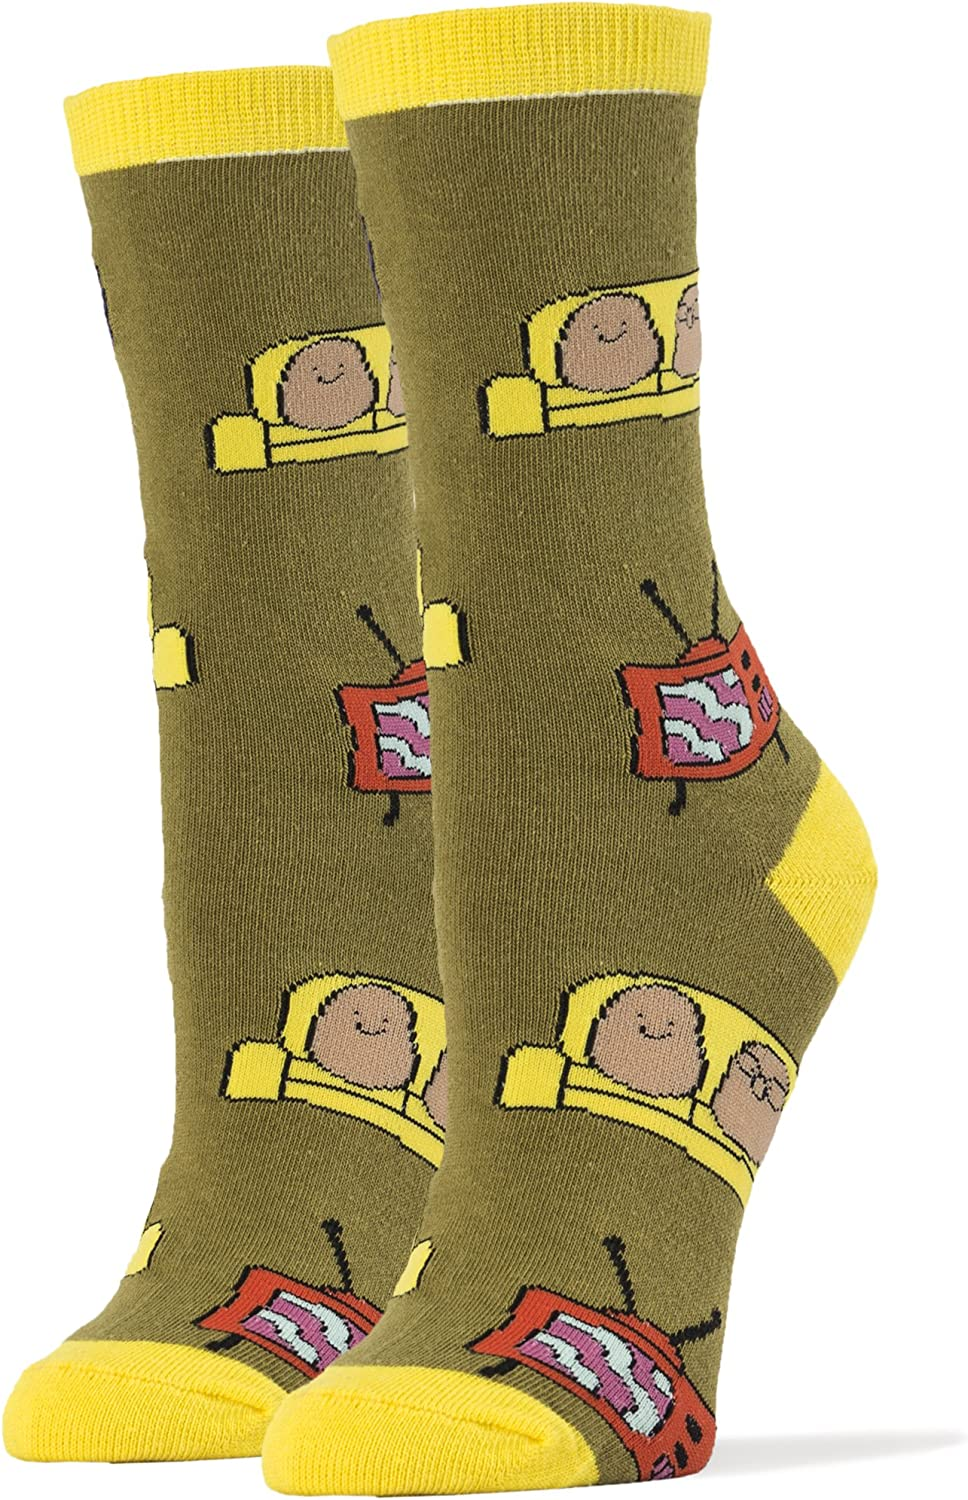 Oooh Yeah Womens Luxury Combed Cotton Crew Socks Couch Potato Party